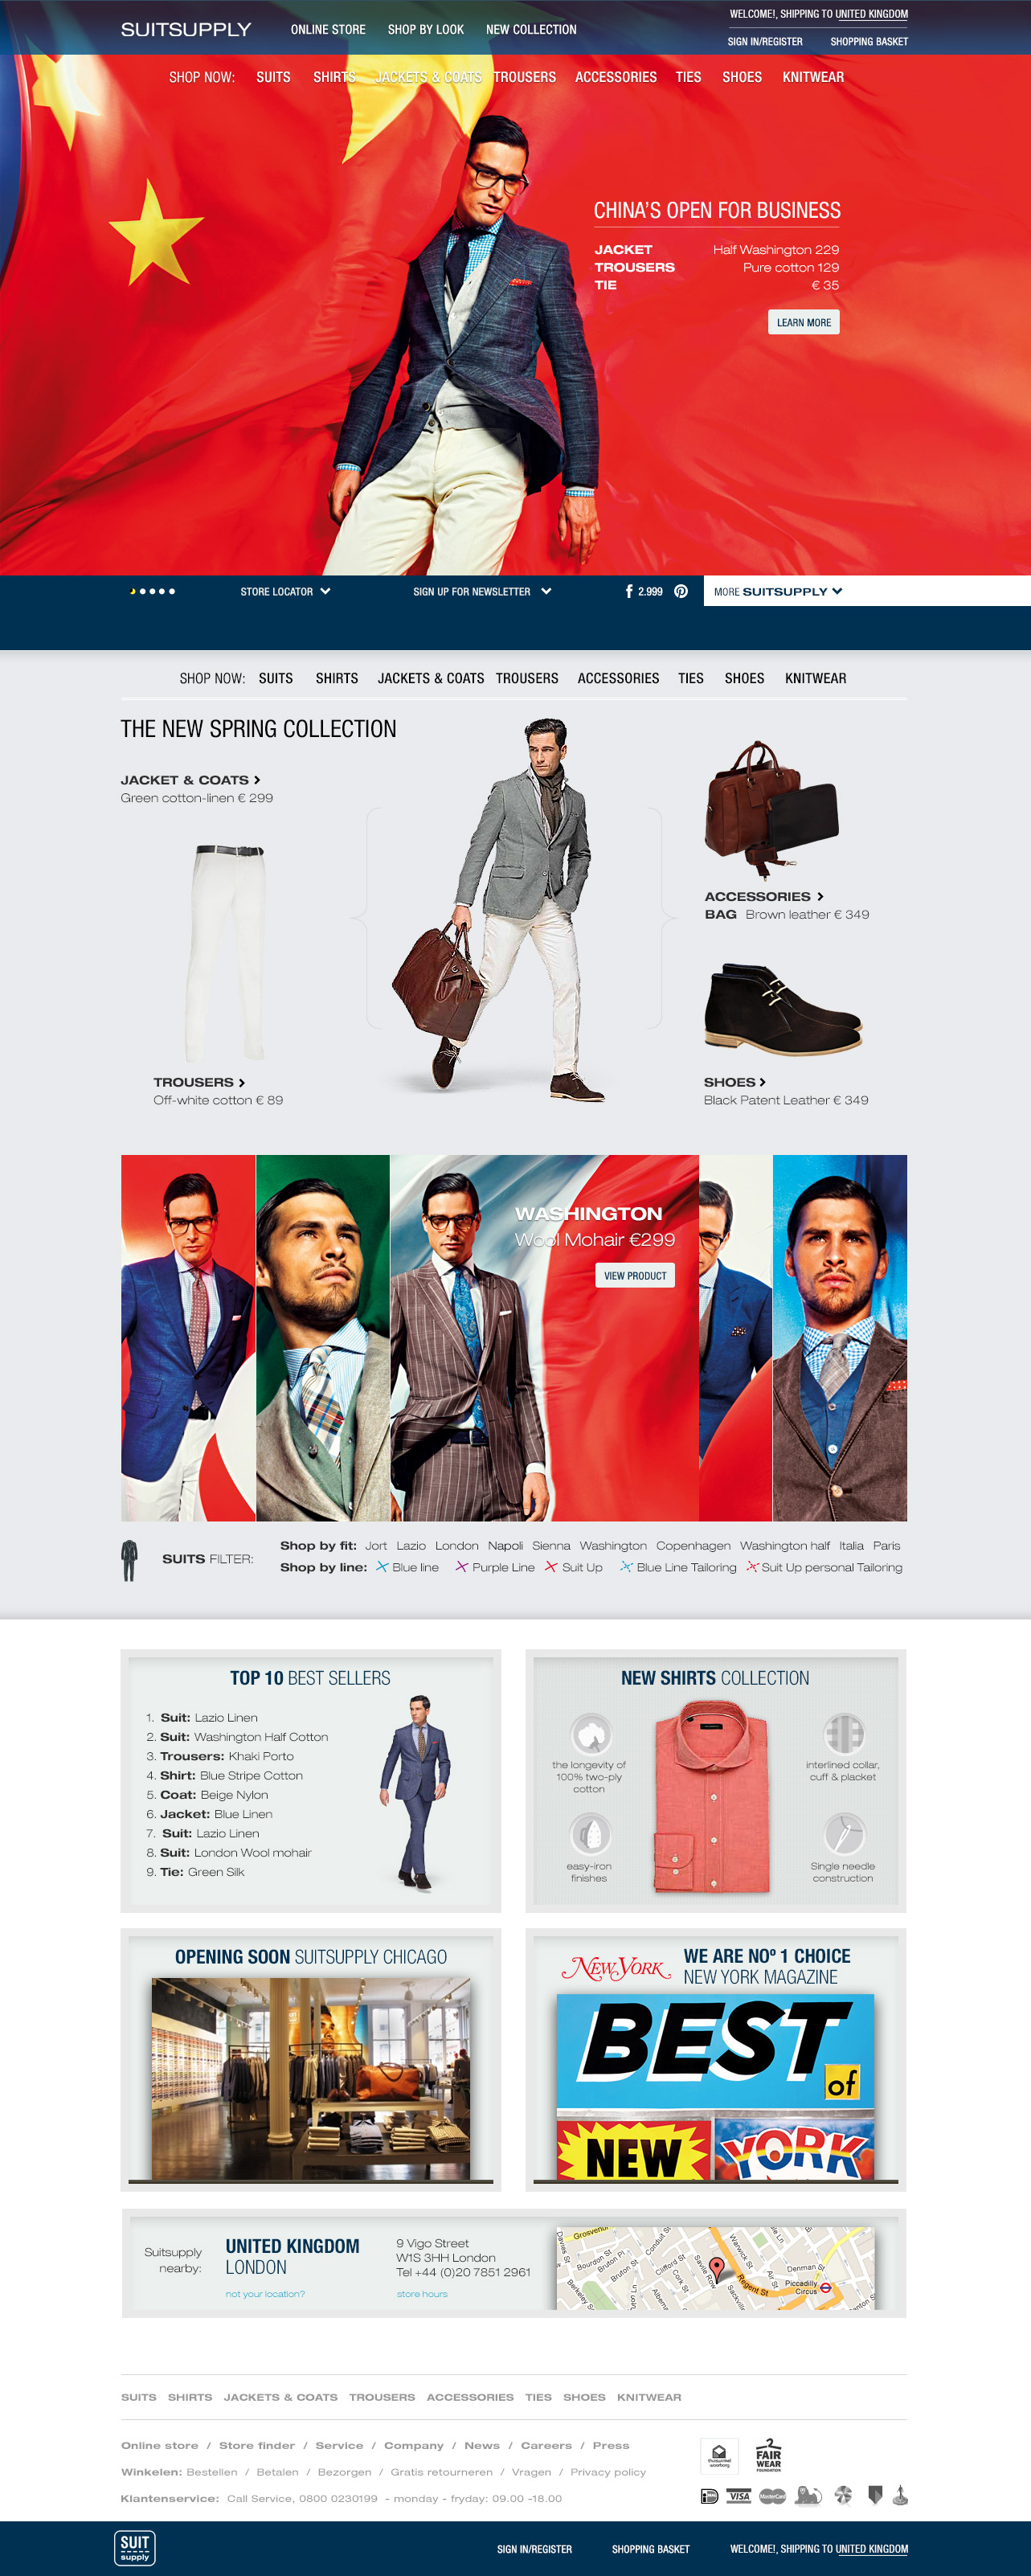 Homepage Suitsupply